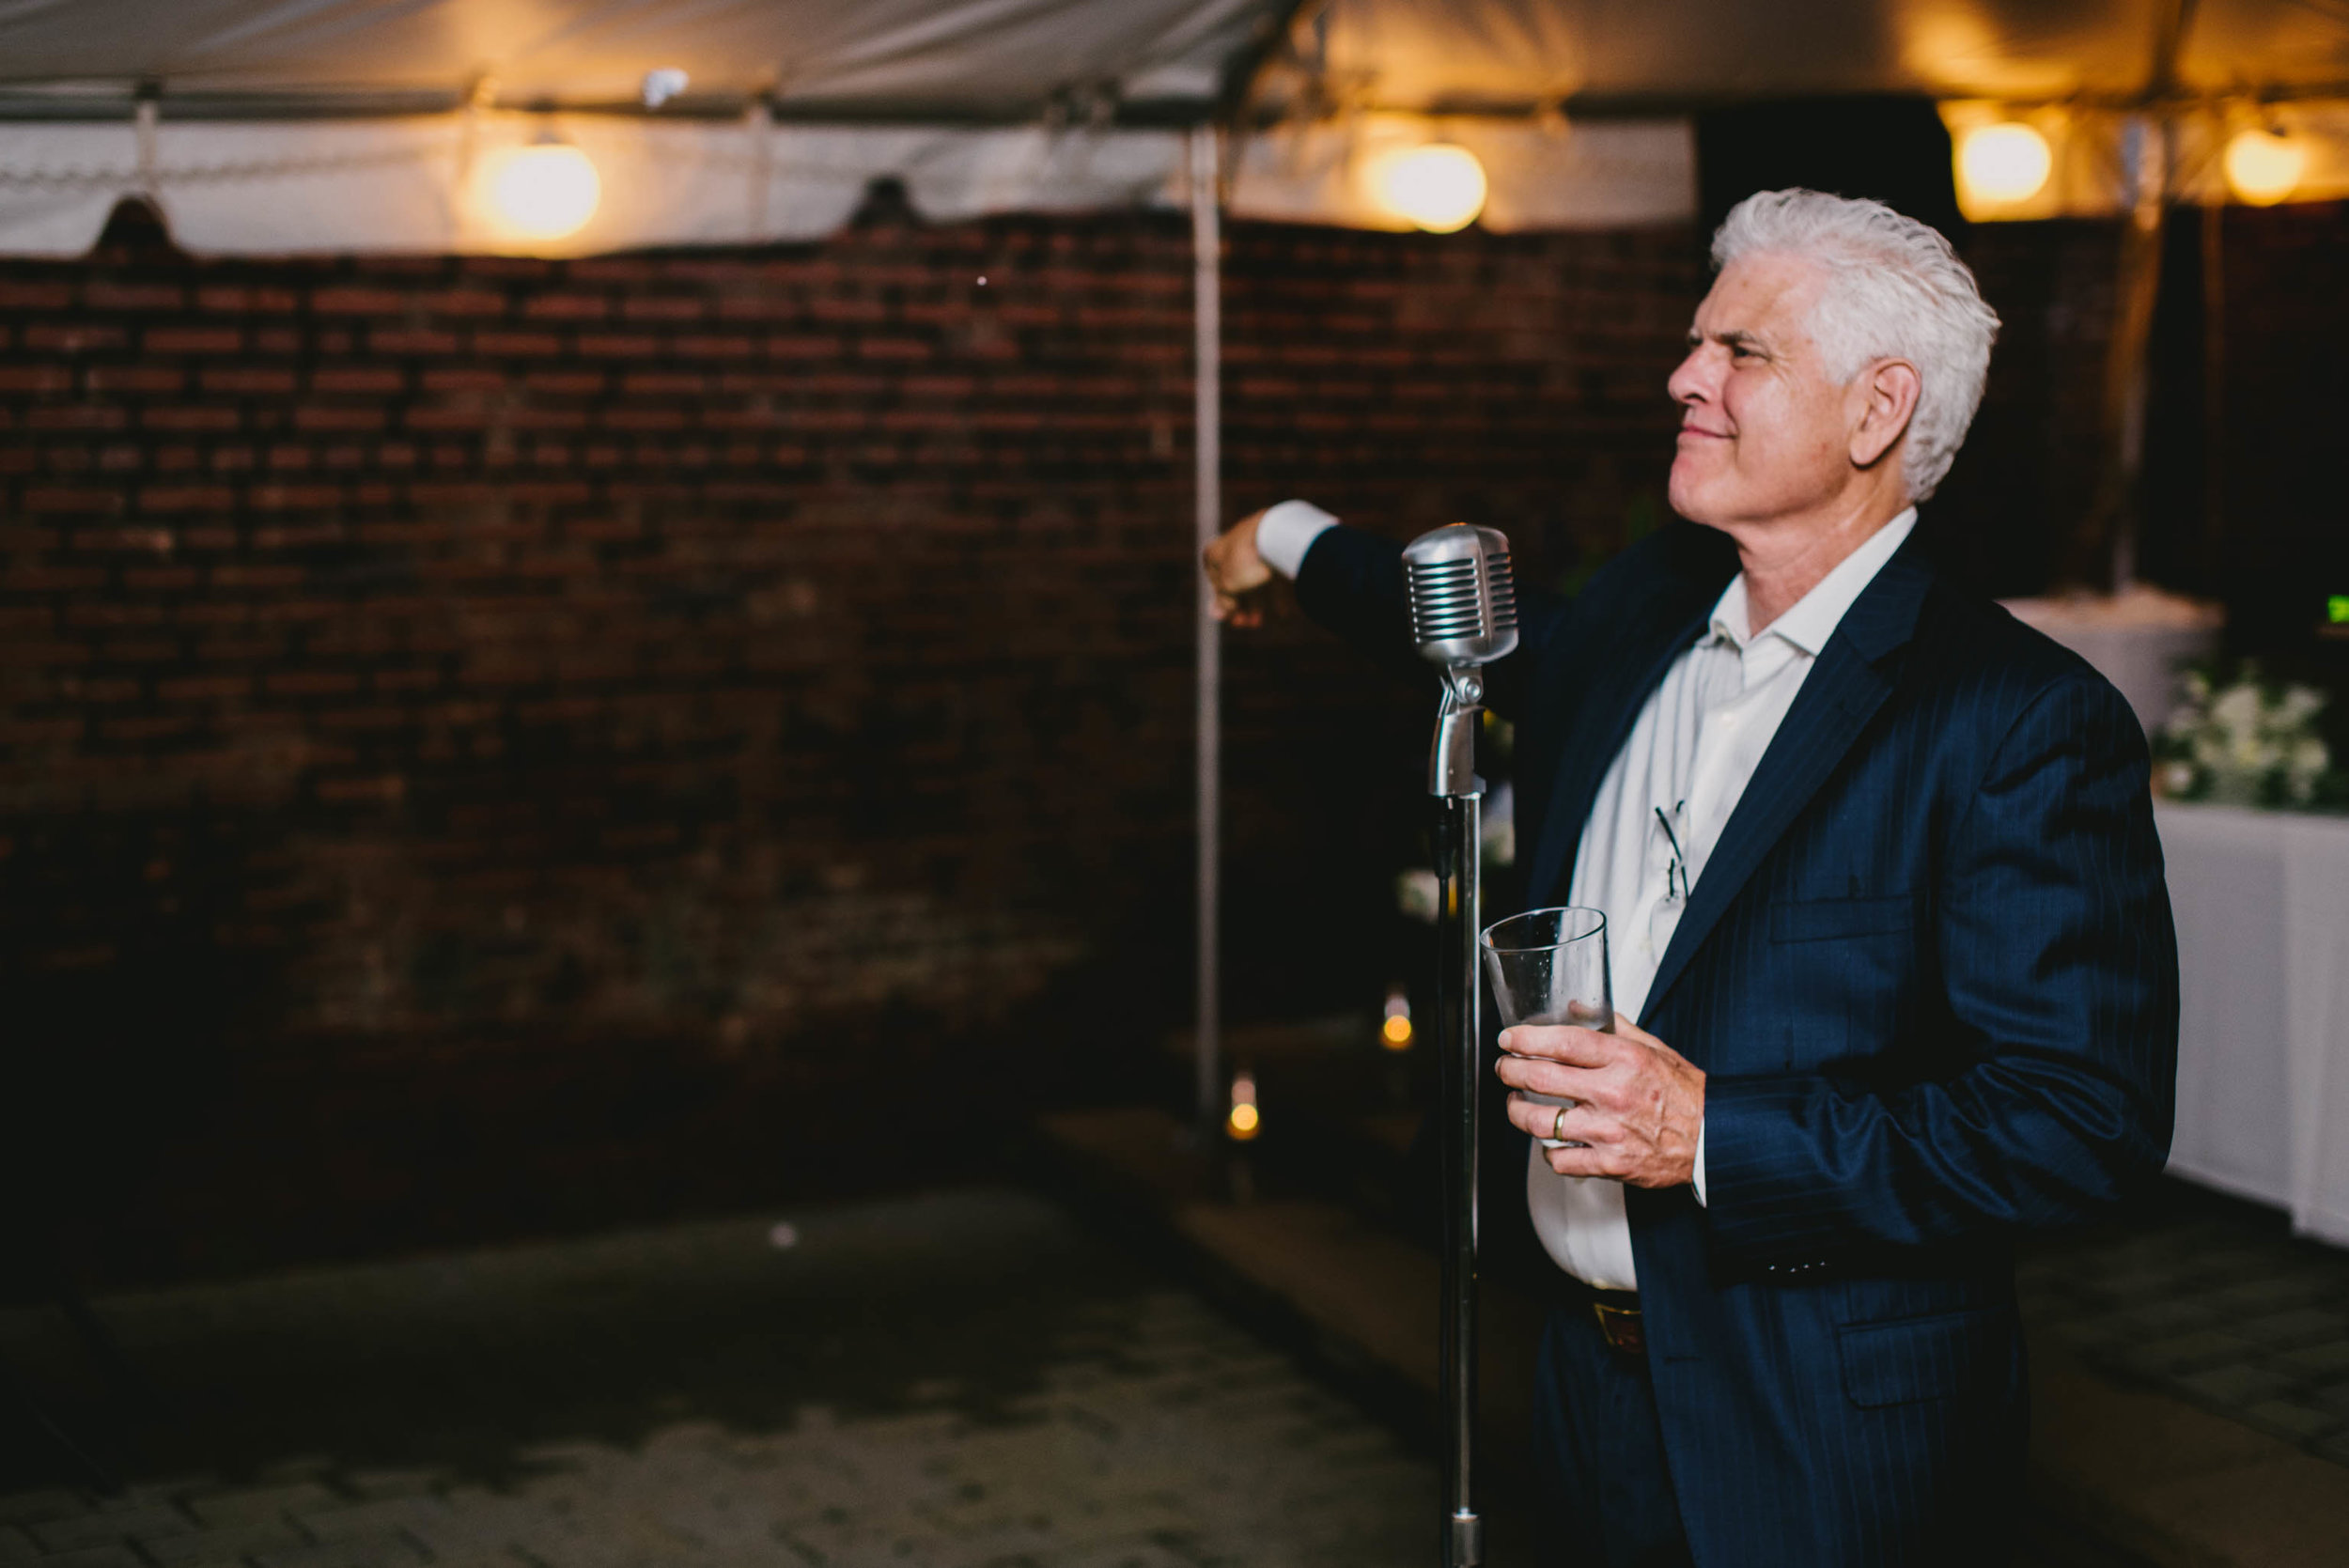 father of the bride tossing away planned speech during toast at this Jiddi Space and Courtyard Wedding at Sitti Restaurant